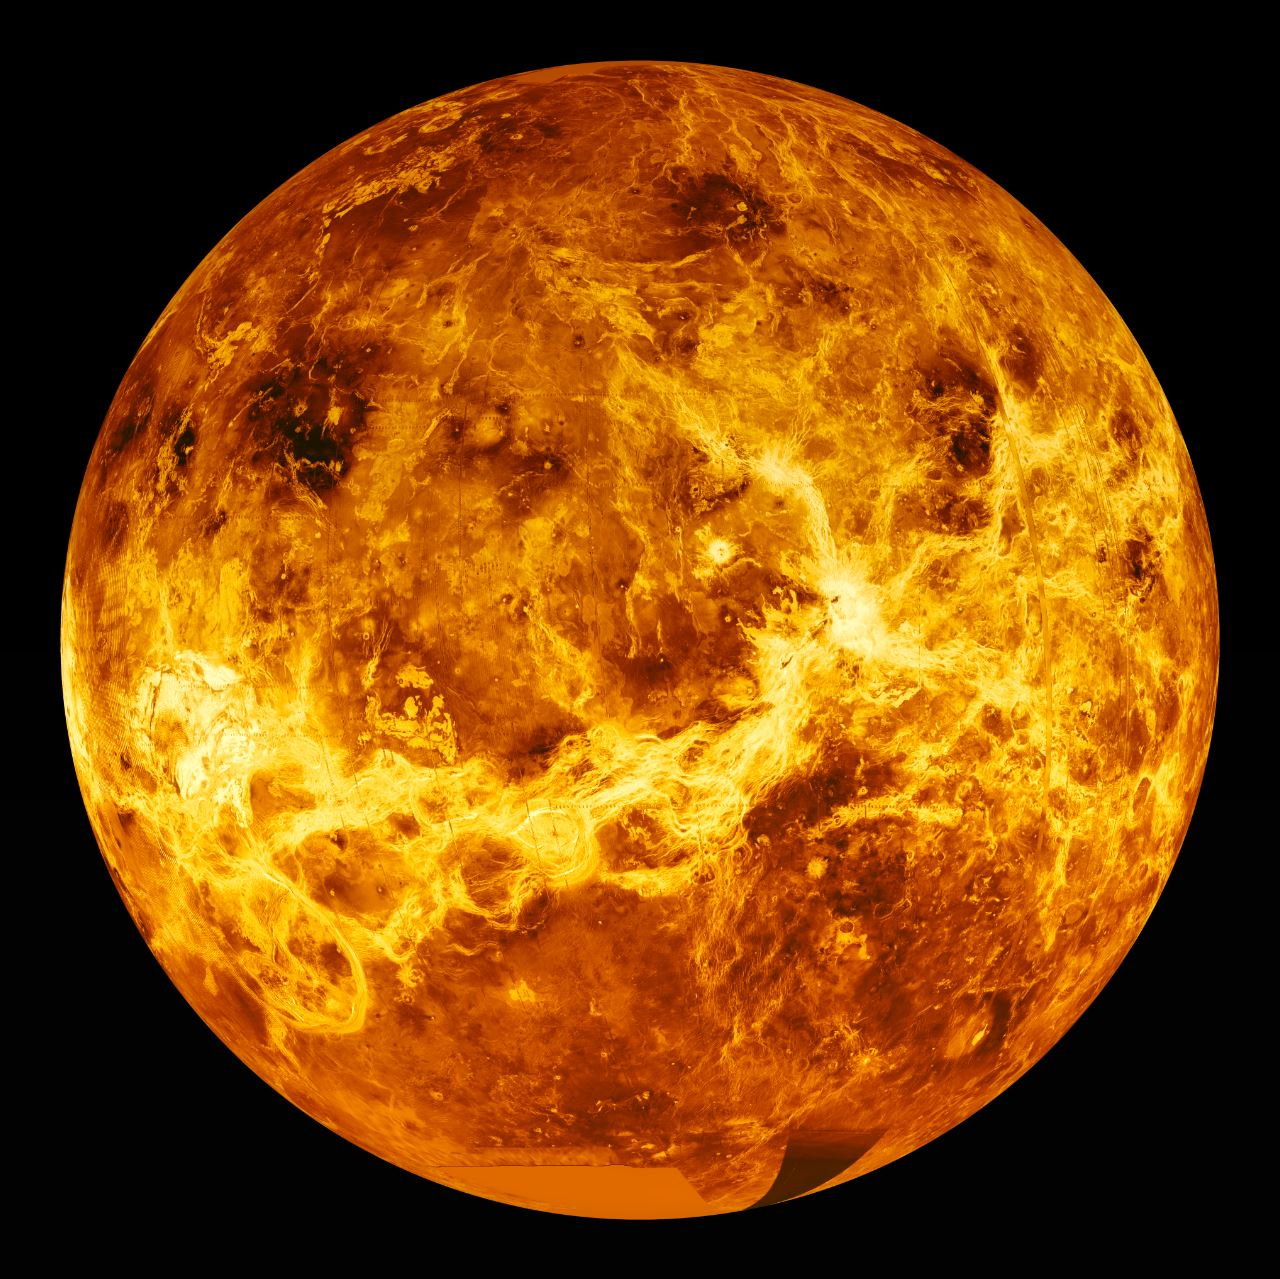 Visible-wavelength light is unable to penetrate the thick cloud layer on Venus. Instead, radar is required to view the surface from space. This is a global radar image mosaic of the planet, compiled with data returned by the Magellan mission. - Image Credits:  NASA via Wikimedia Commons  - HDR tune by  Universal-Sci